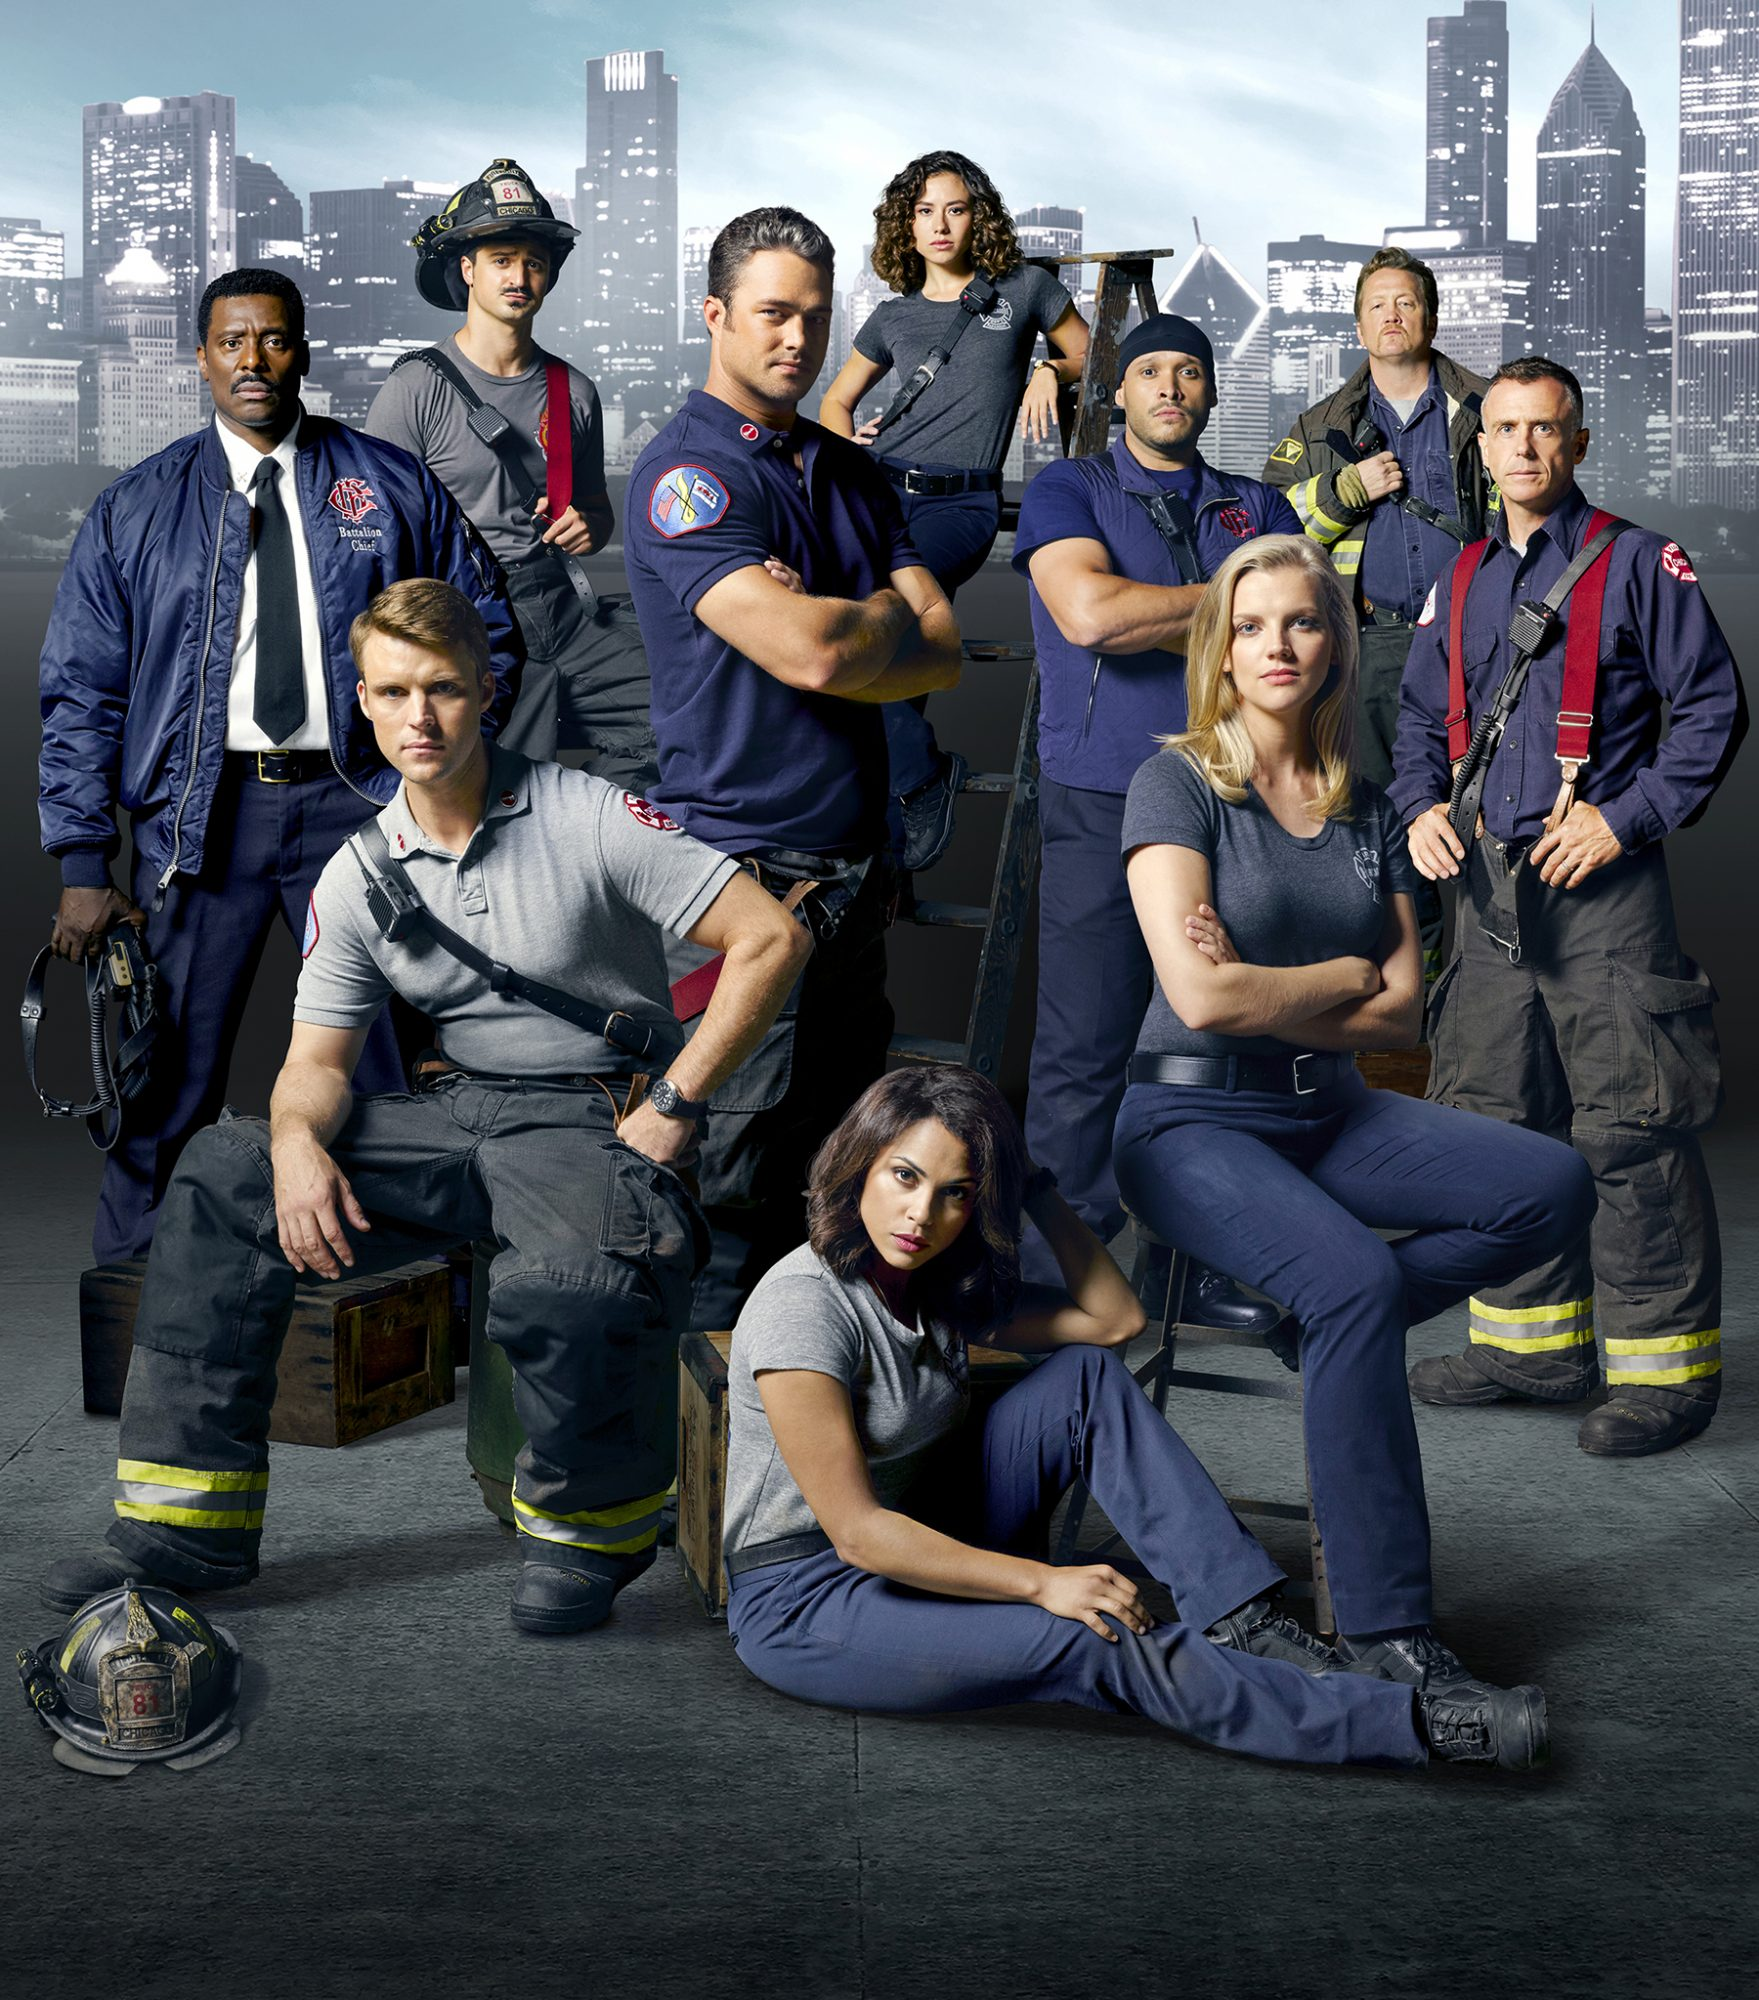 The Hero's Tale…Artifacts from the NBCUniversal Drama Chicago Fire